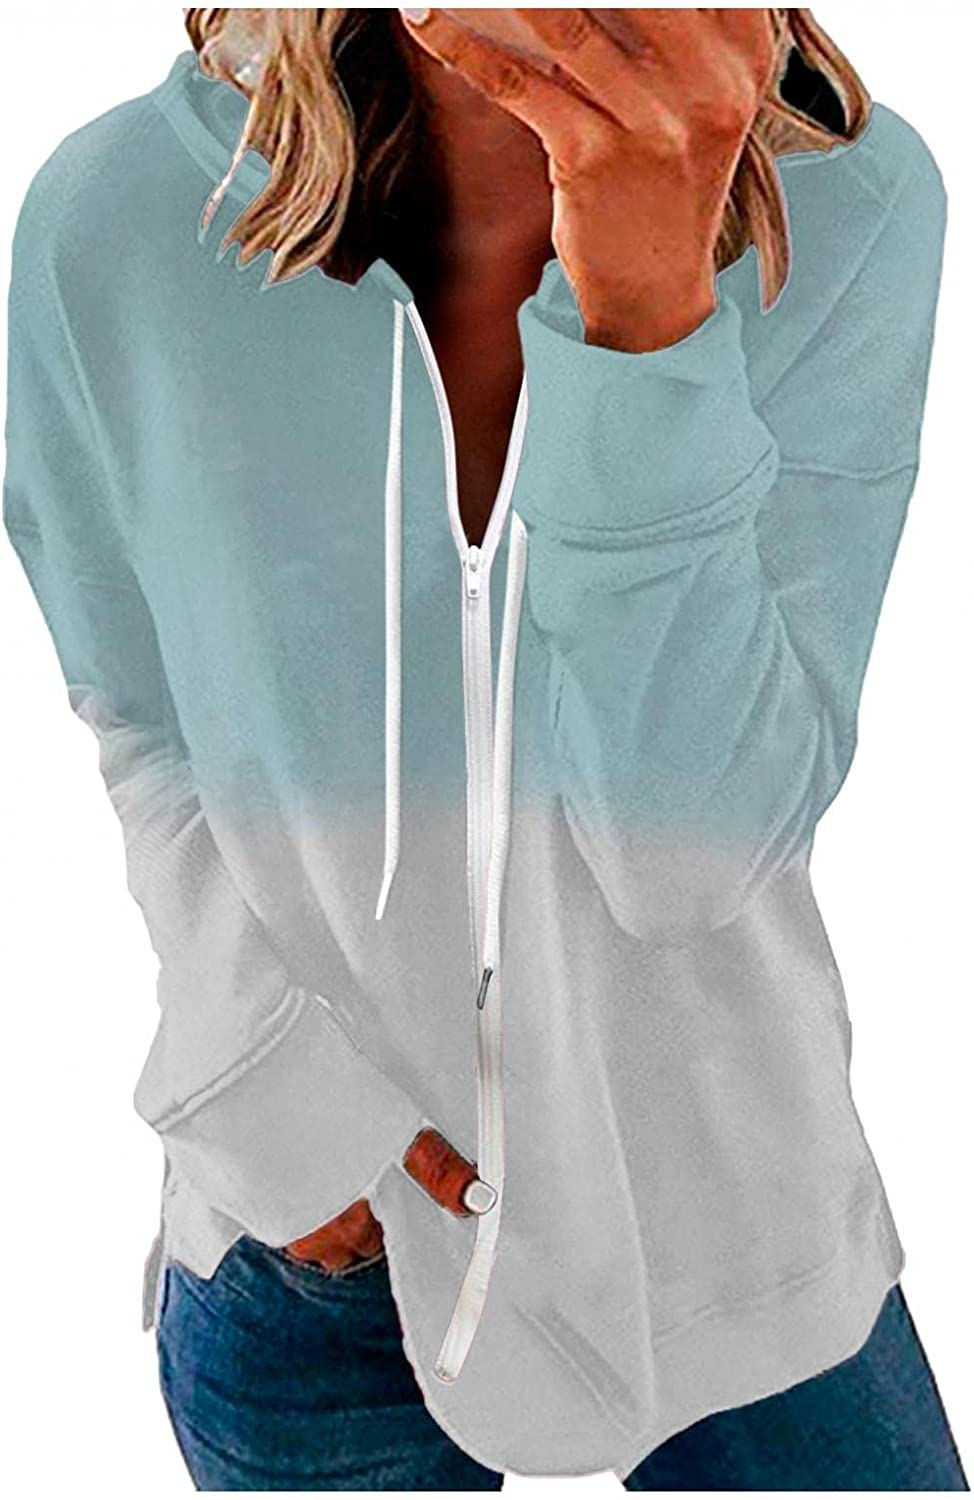 Jeepuch Hoodies for Women Long Sleeve Zip Up Gradient Sweatshirt Loose Pullover Shirts Activewear Jacket with Pocket